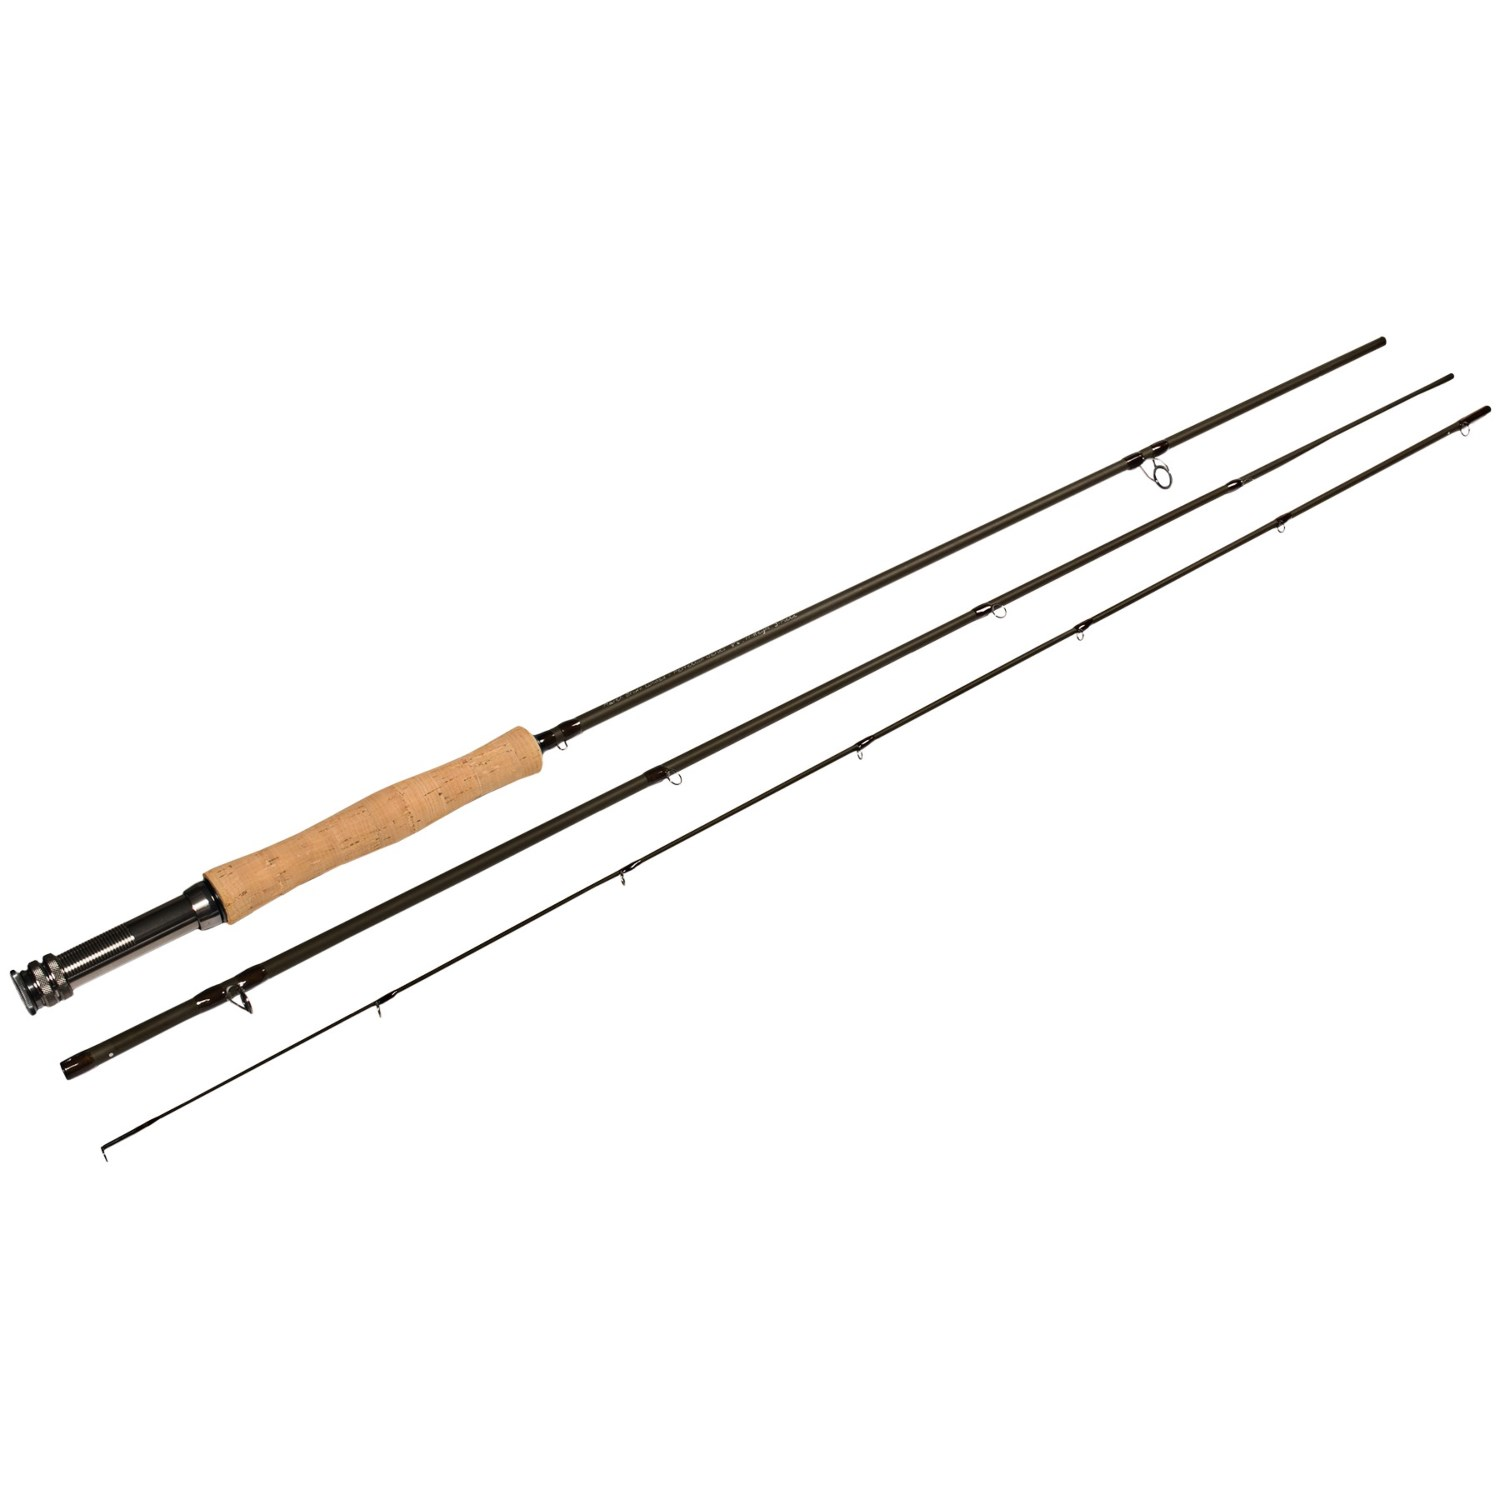 March brown perfection fly fishing rod 9 39 6 3 piece for 3 piece fishing rod